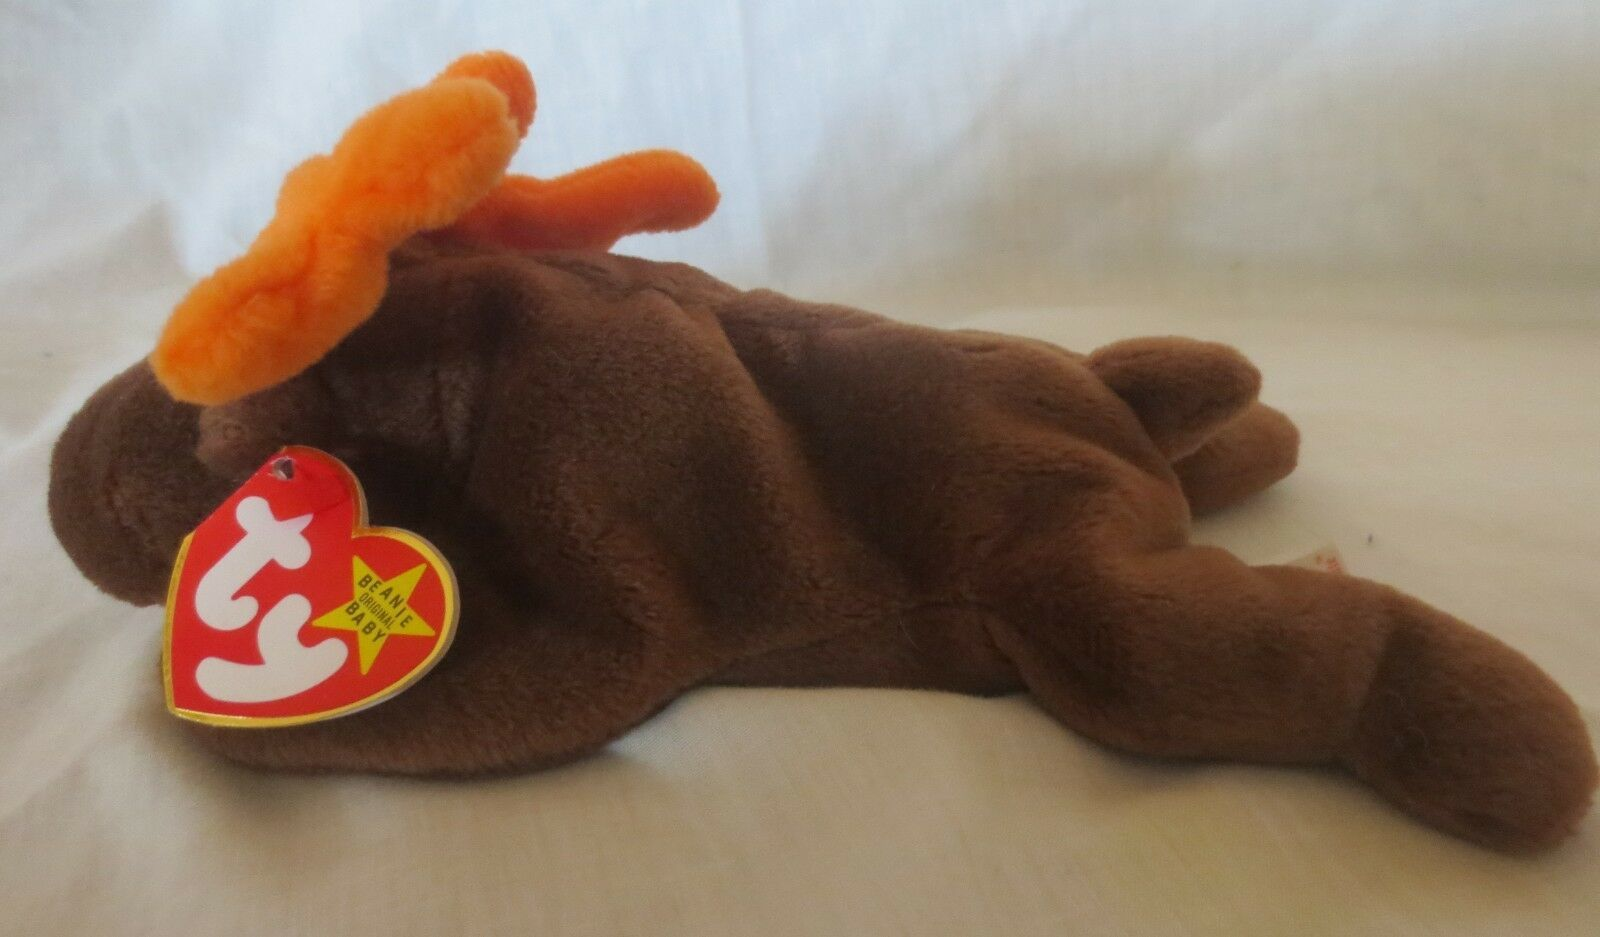 Primary image for Ty Beanie Baby Chocolate the Moose 4th Generation Hang Tag PVC Filled Style 4015